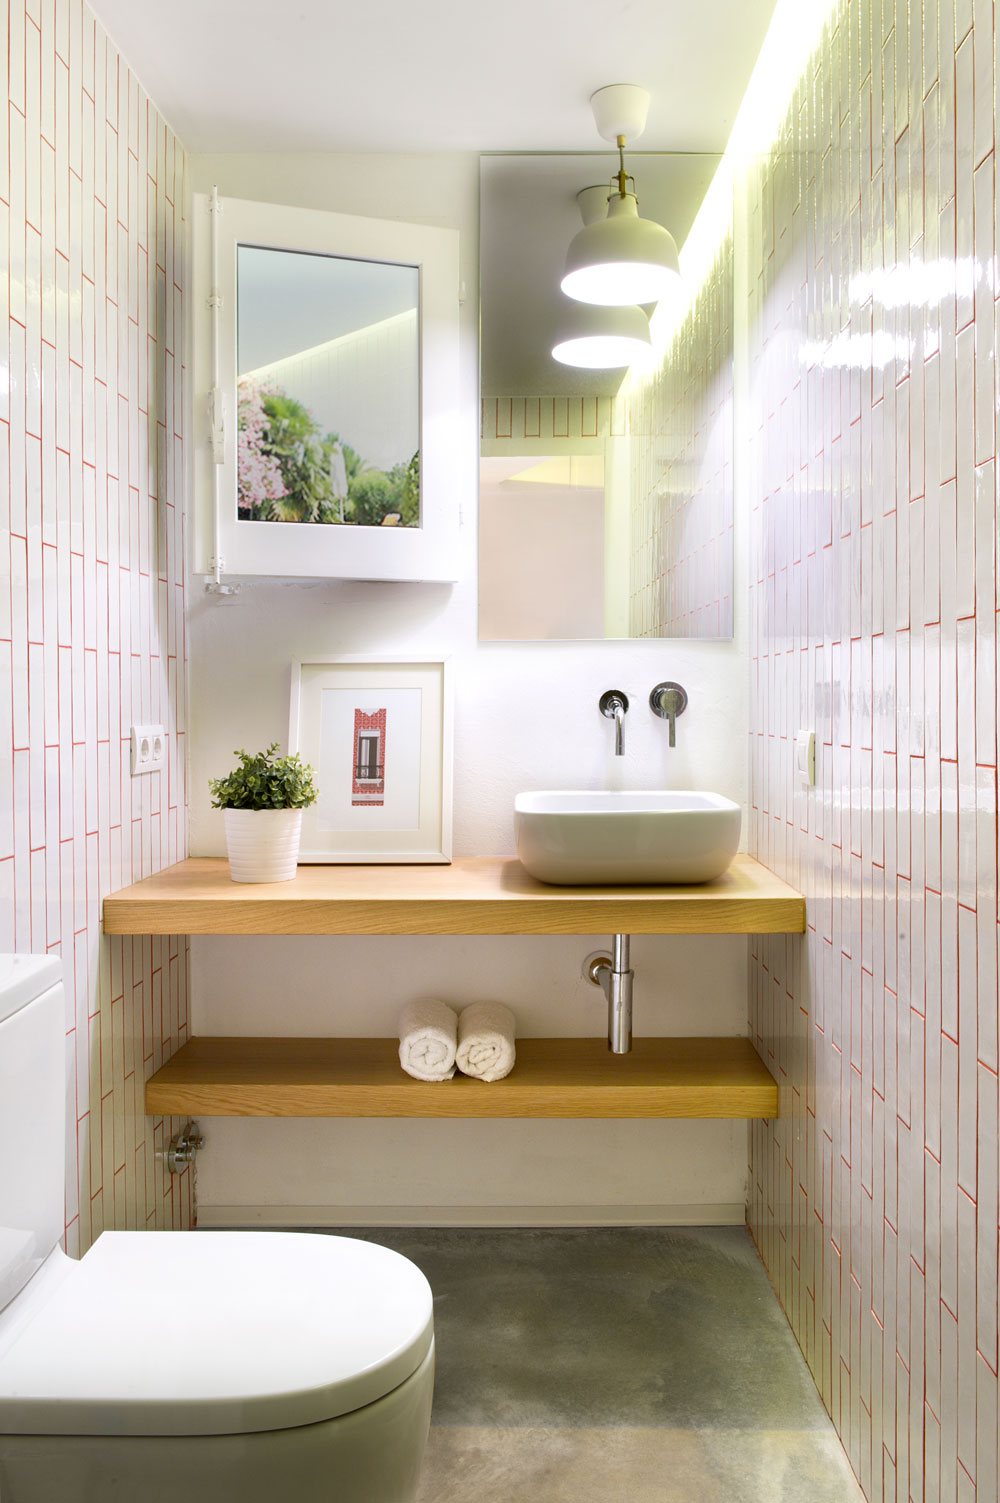 A tranquil and relaxing rest room with pure white touches on the walls, while the floor seems industrial as it remains in its raw and concrete look without tiling. There are a few touches of nature on the frame, potted plants and wooden shelves.